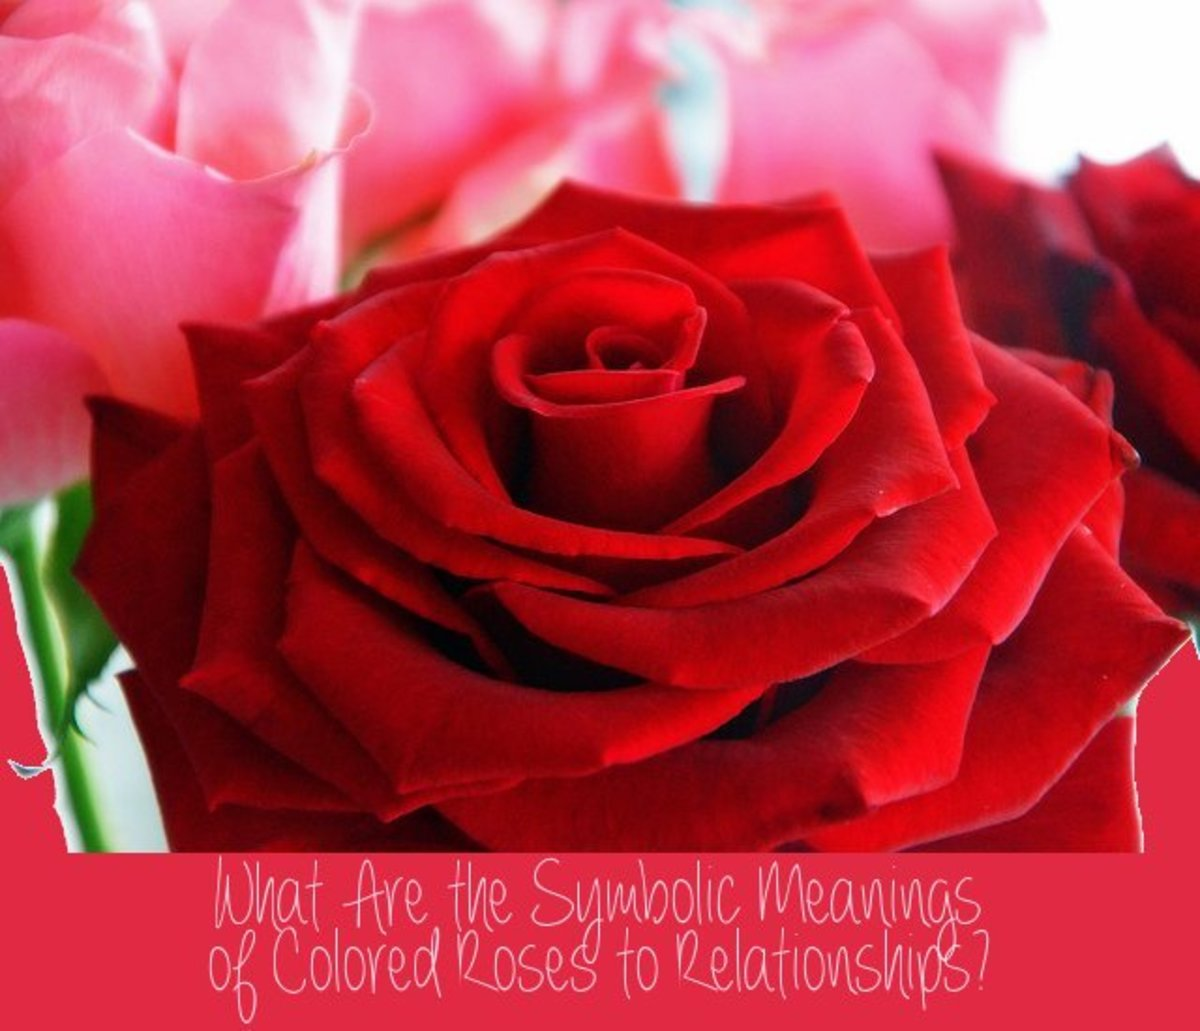 Differently colored roses represent different things in relationships. Giving your lover the wrong color rose could send the wrong message. Knowing these colors will help you to pick up the best bouquet (or single rose) for your loved ones.